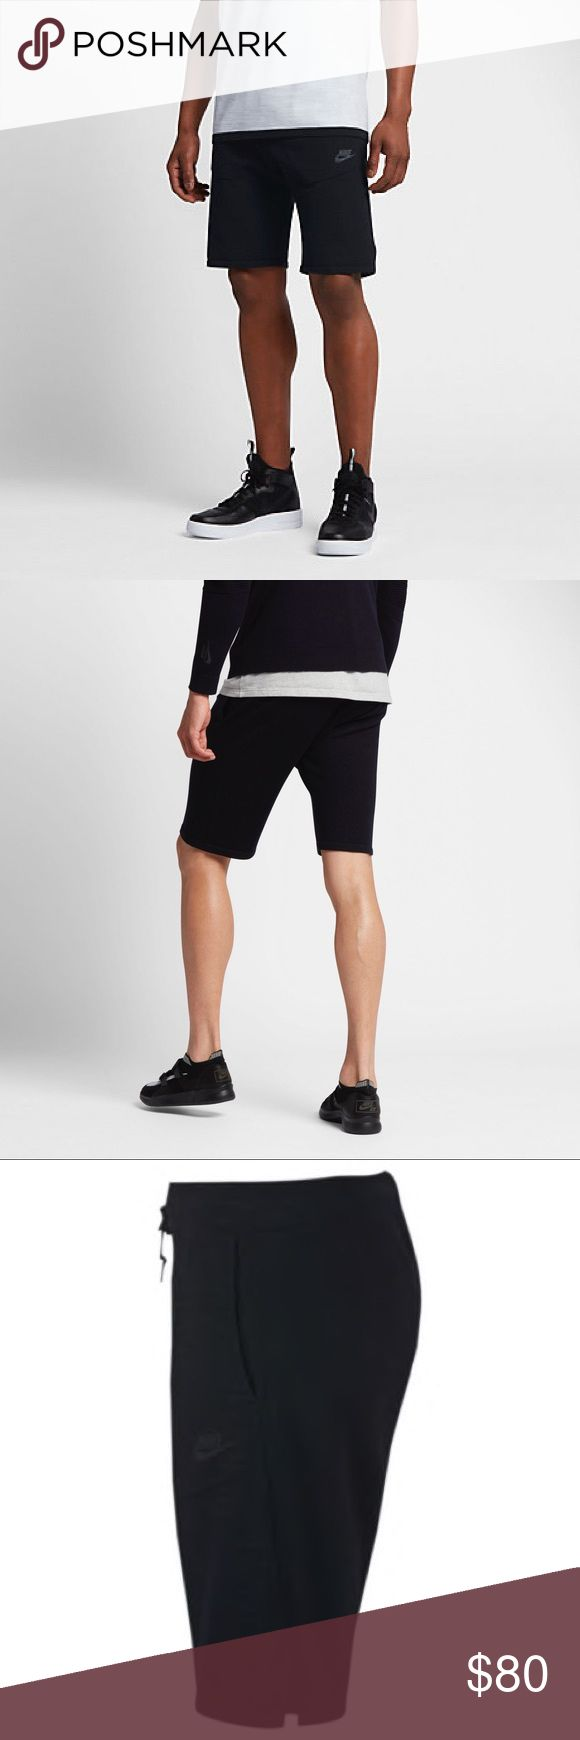 NIKE TECH KNIT SHORTS - MEN'S Great material one of NIKES BEST DESIGN Nike Shorts Athletic